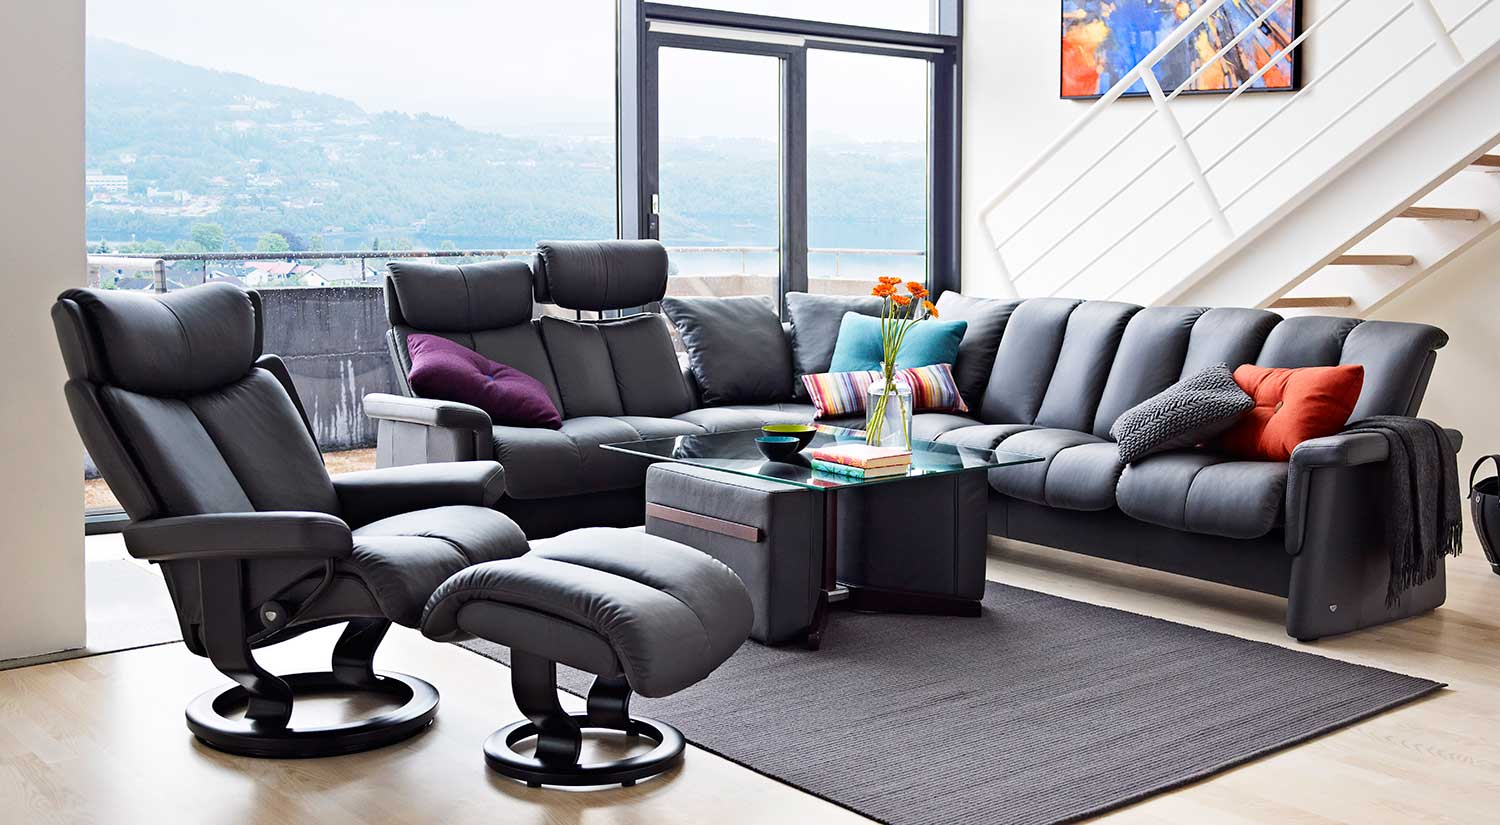 circle furniture legend stressless sectional ekornes sectionals boston. Black Bedroom Furniture Sets. Home Design Ideas